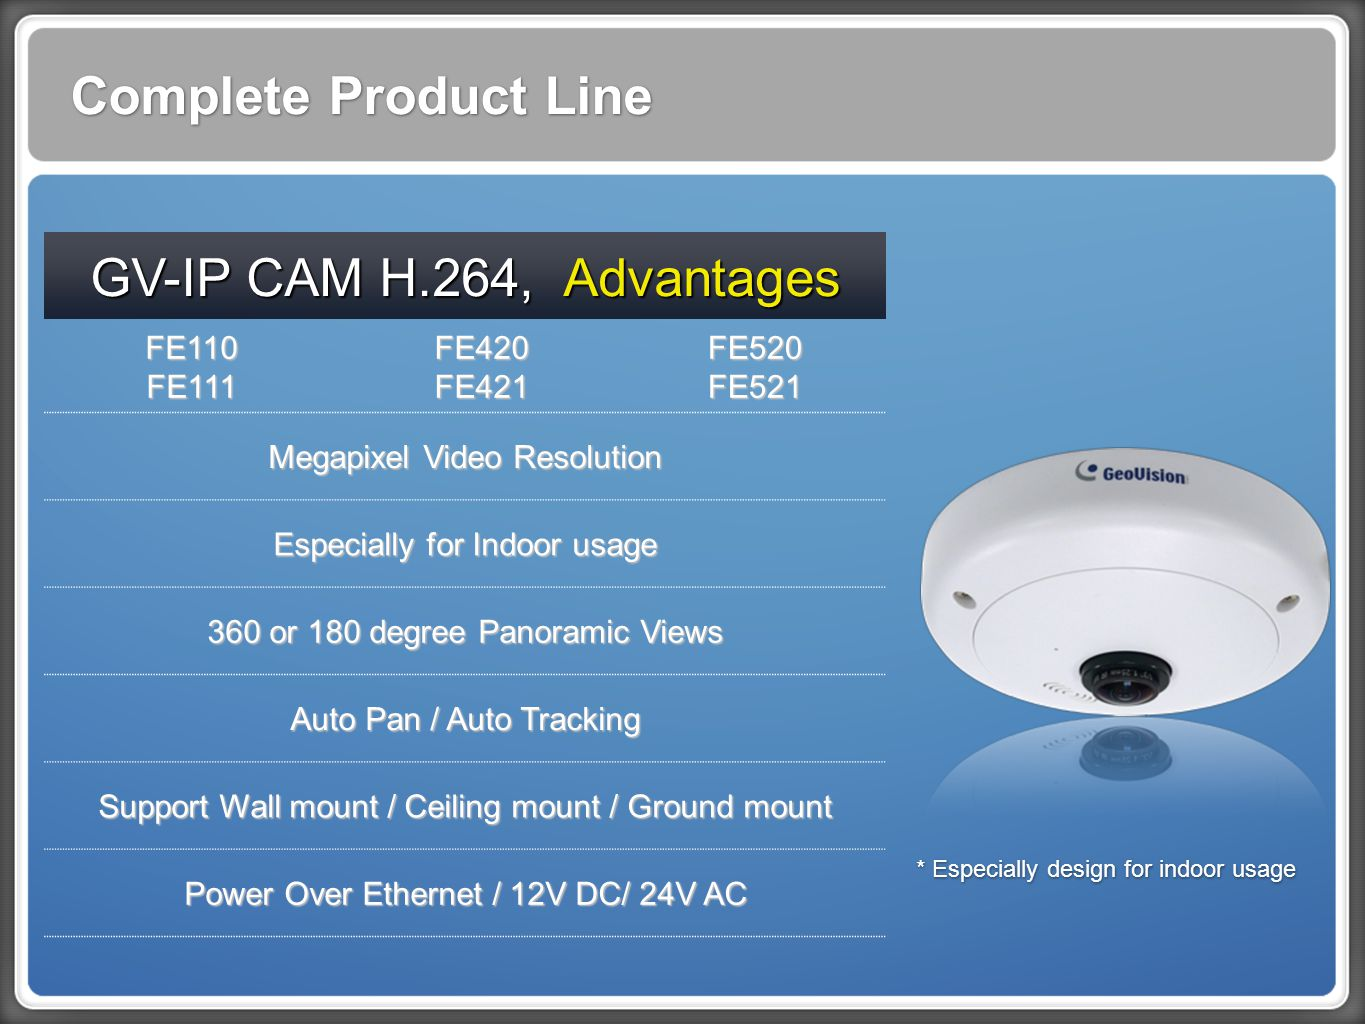 Complete Product Line GV-IP CAM H.264, Advantages FE110 FE111 FE420